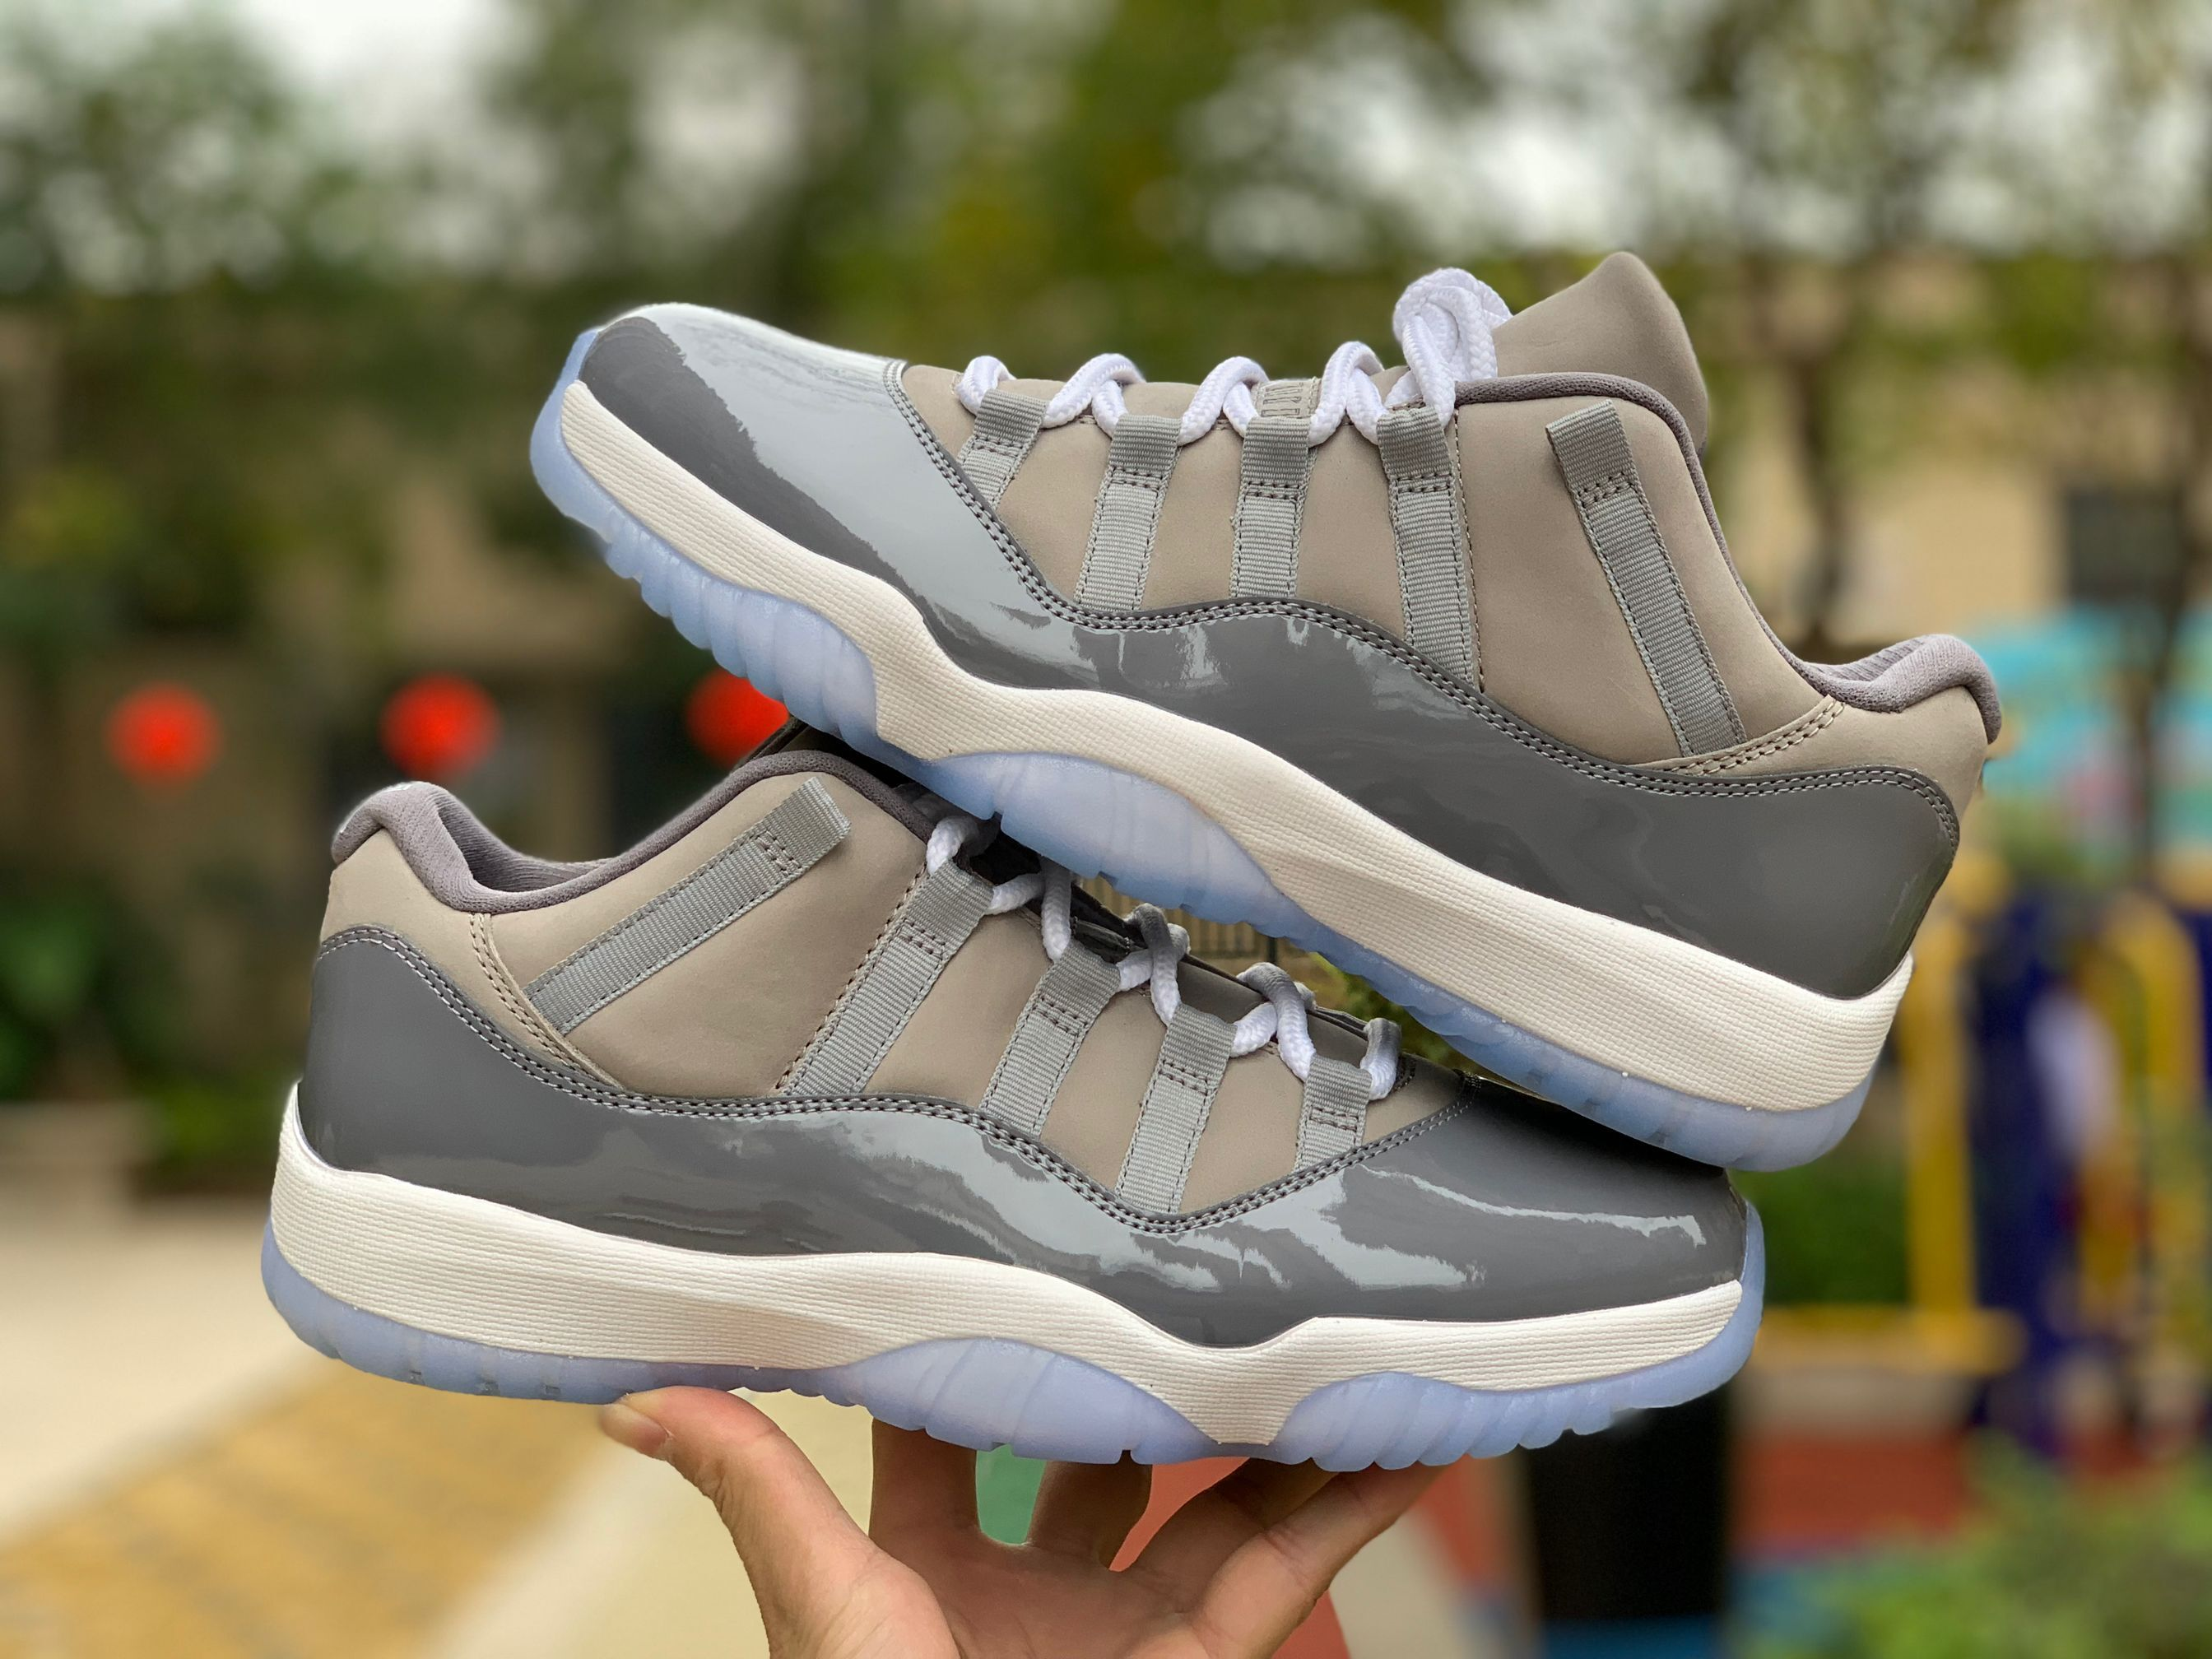 new jordan 11 low cool grey shoes